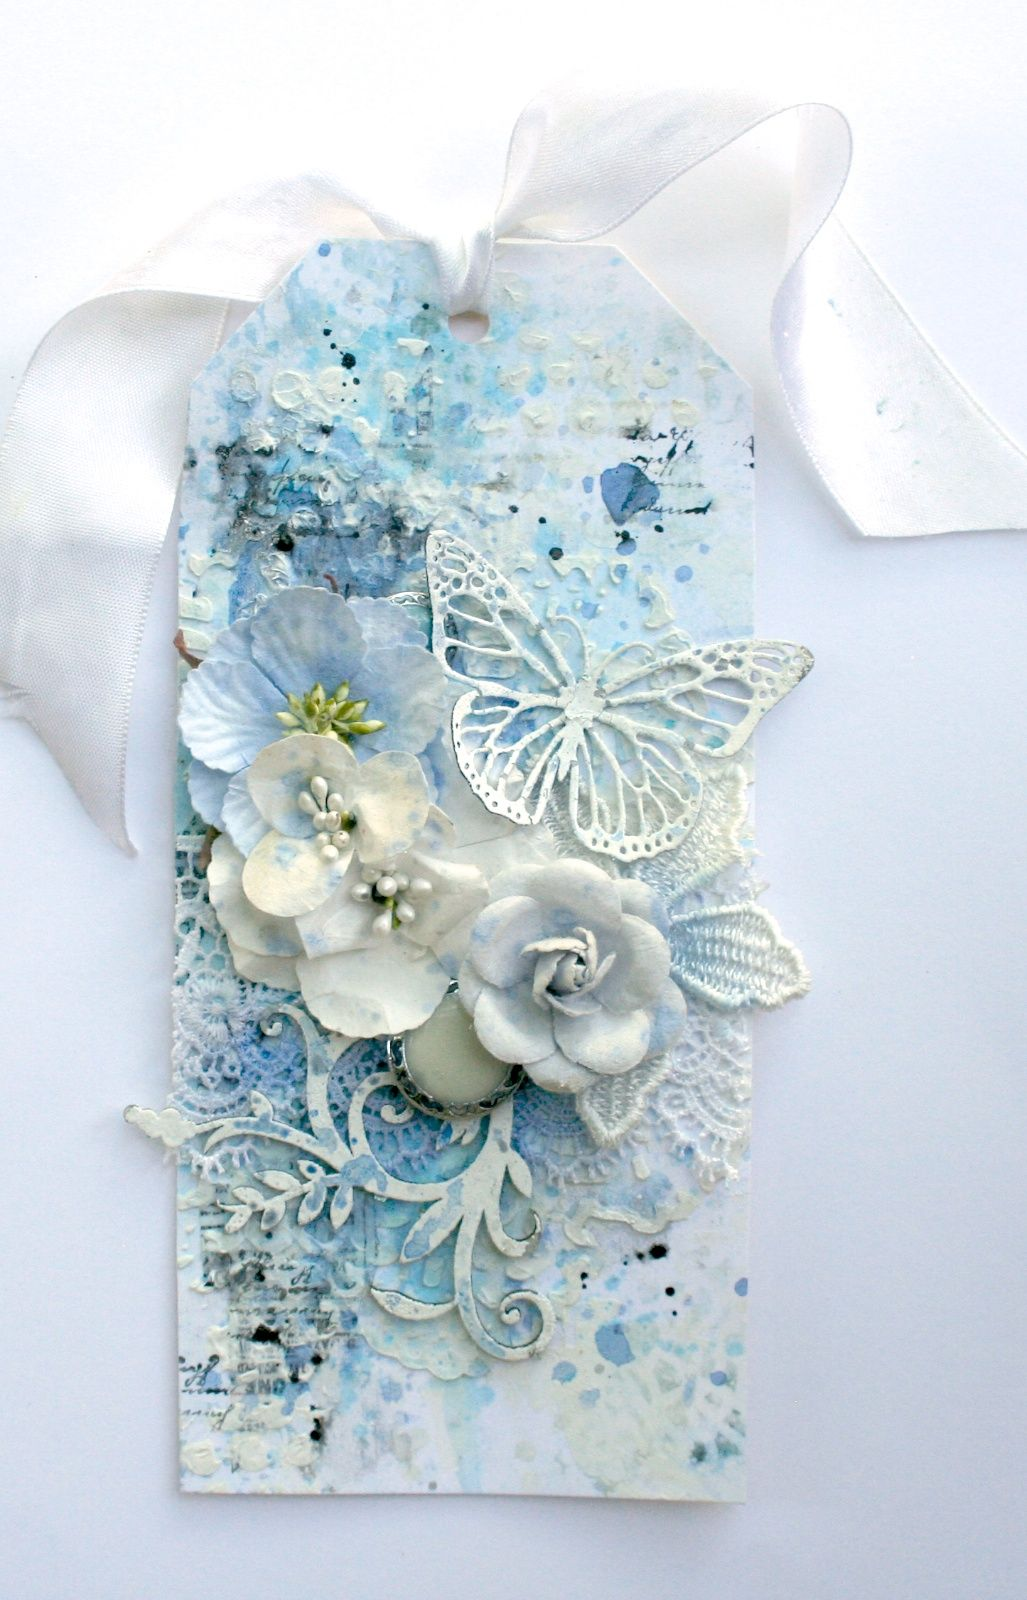 Shabby Tag created by Lisa Griffith for Blue Fern Studios DT using the new paper collection 'Ombre Dreams' more info at www.thepaperattic.blogspot.com